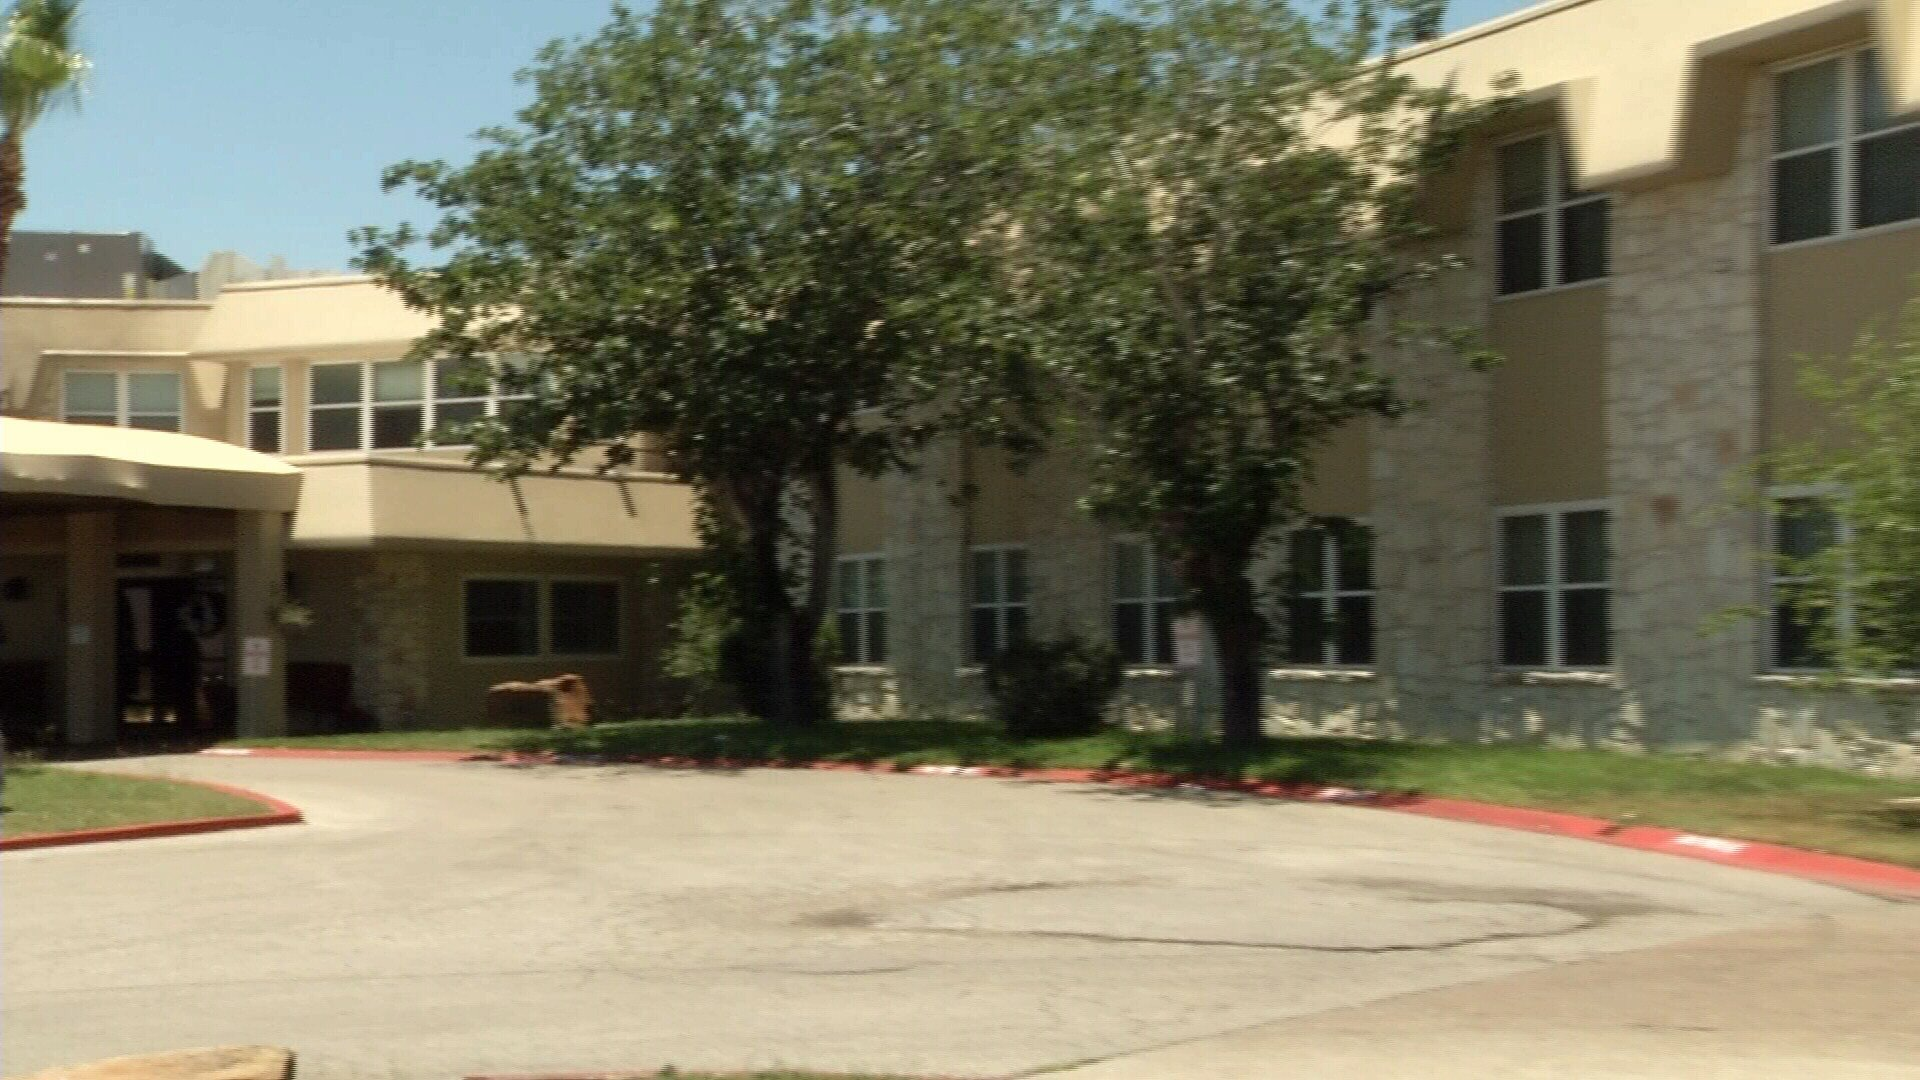 A KRIS 6 News investigation has found the U.S. Department of Veterans Affairs continues to place veterans in a local nursing homes with a history of neglect. (KRIS 6 News)